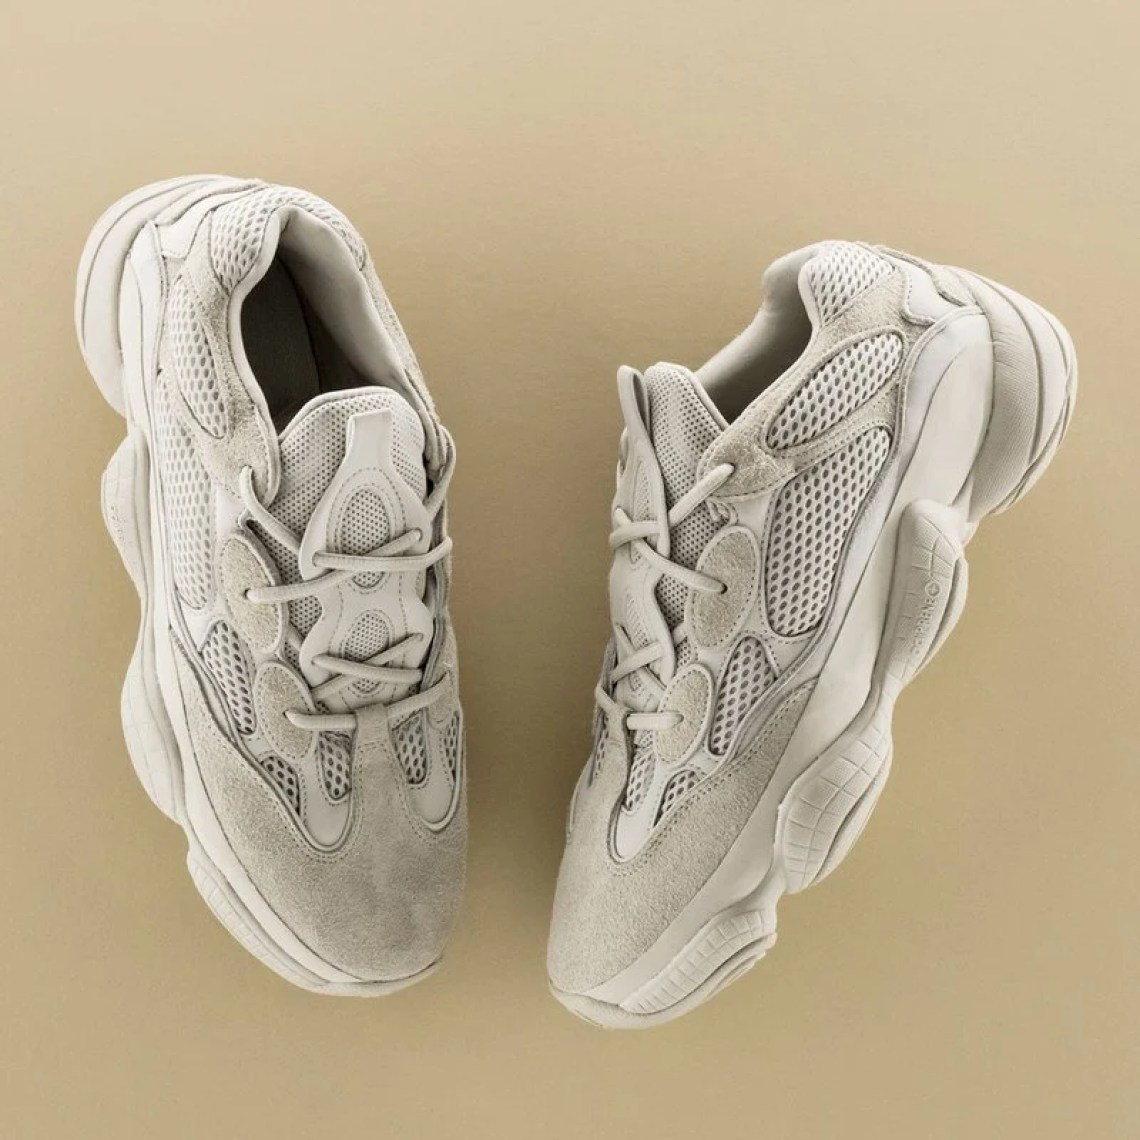 "adidas YEEZY 500 ""Blush"" // Another Look"